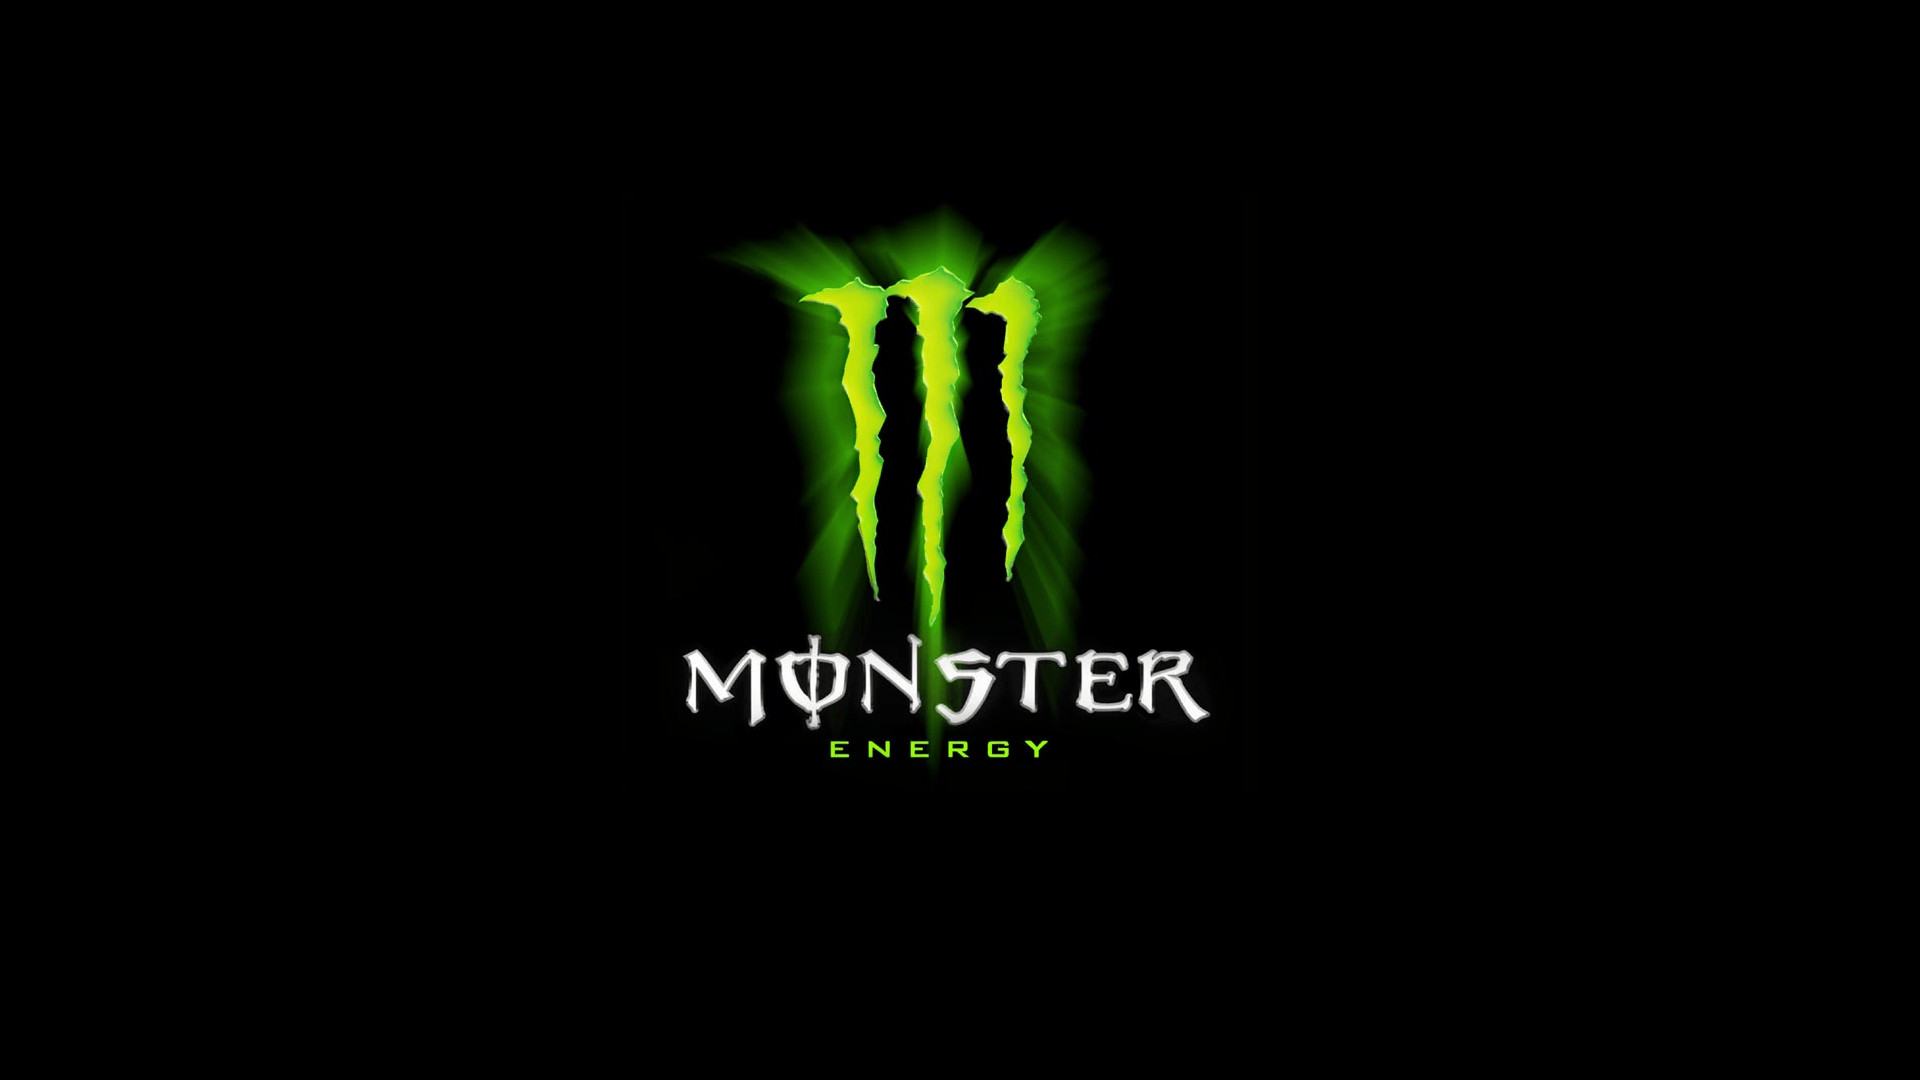 1920x1080 Monster Energy Logo Wallpapers   Wallpaper Cave